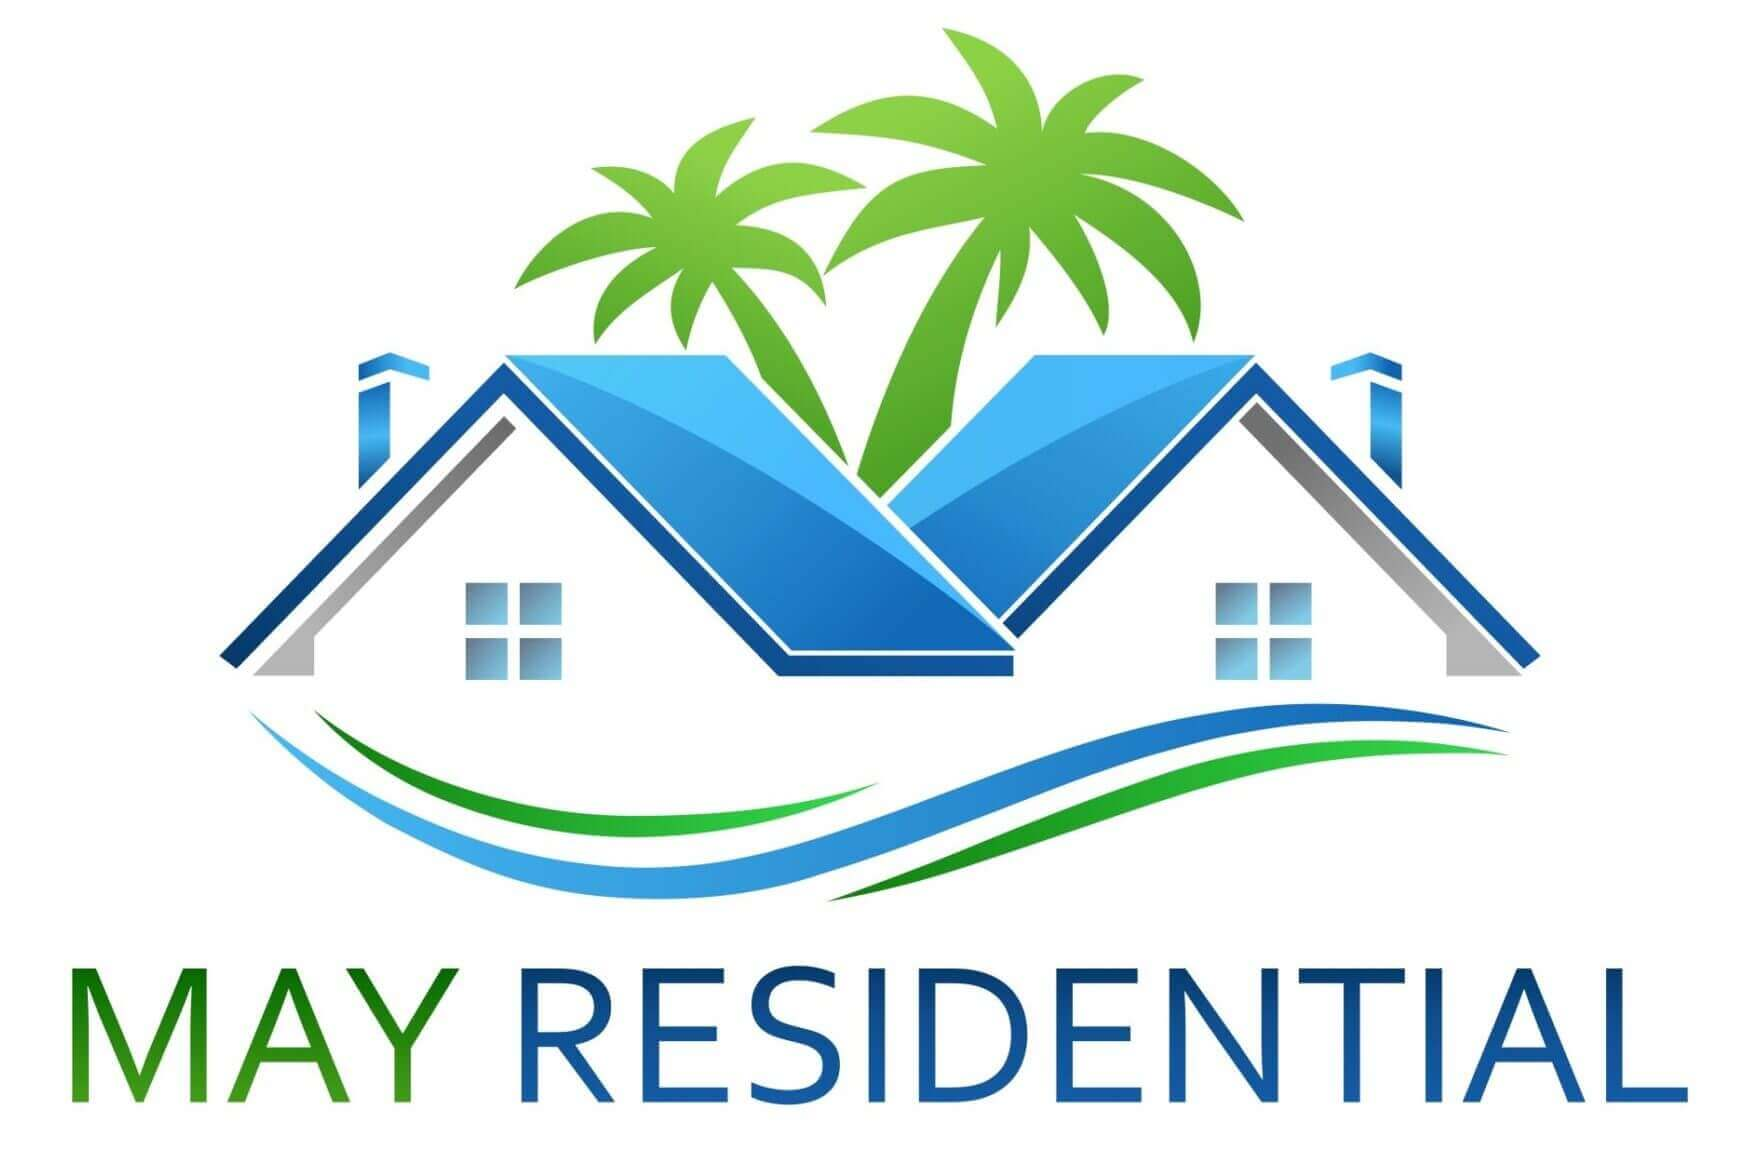 May Residential is an Award Winning Construction Management & Consulting Firm